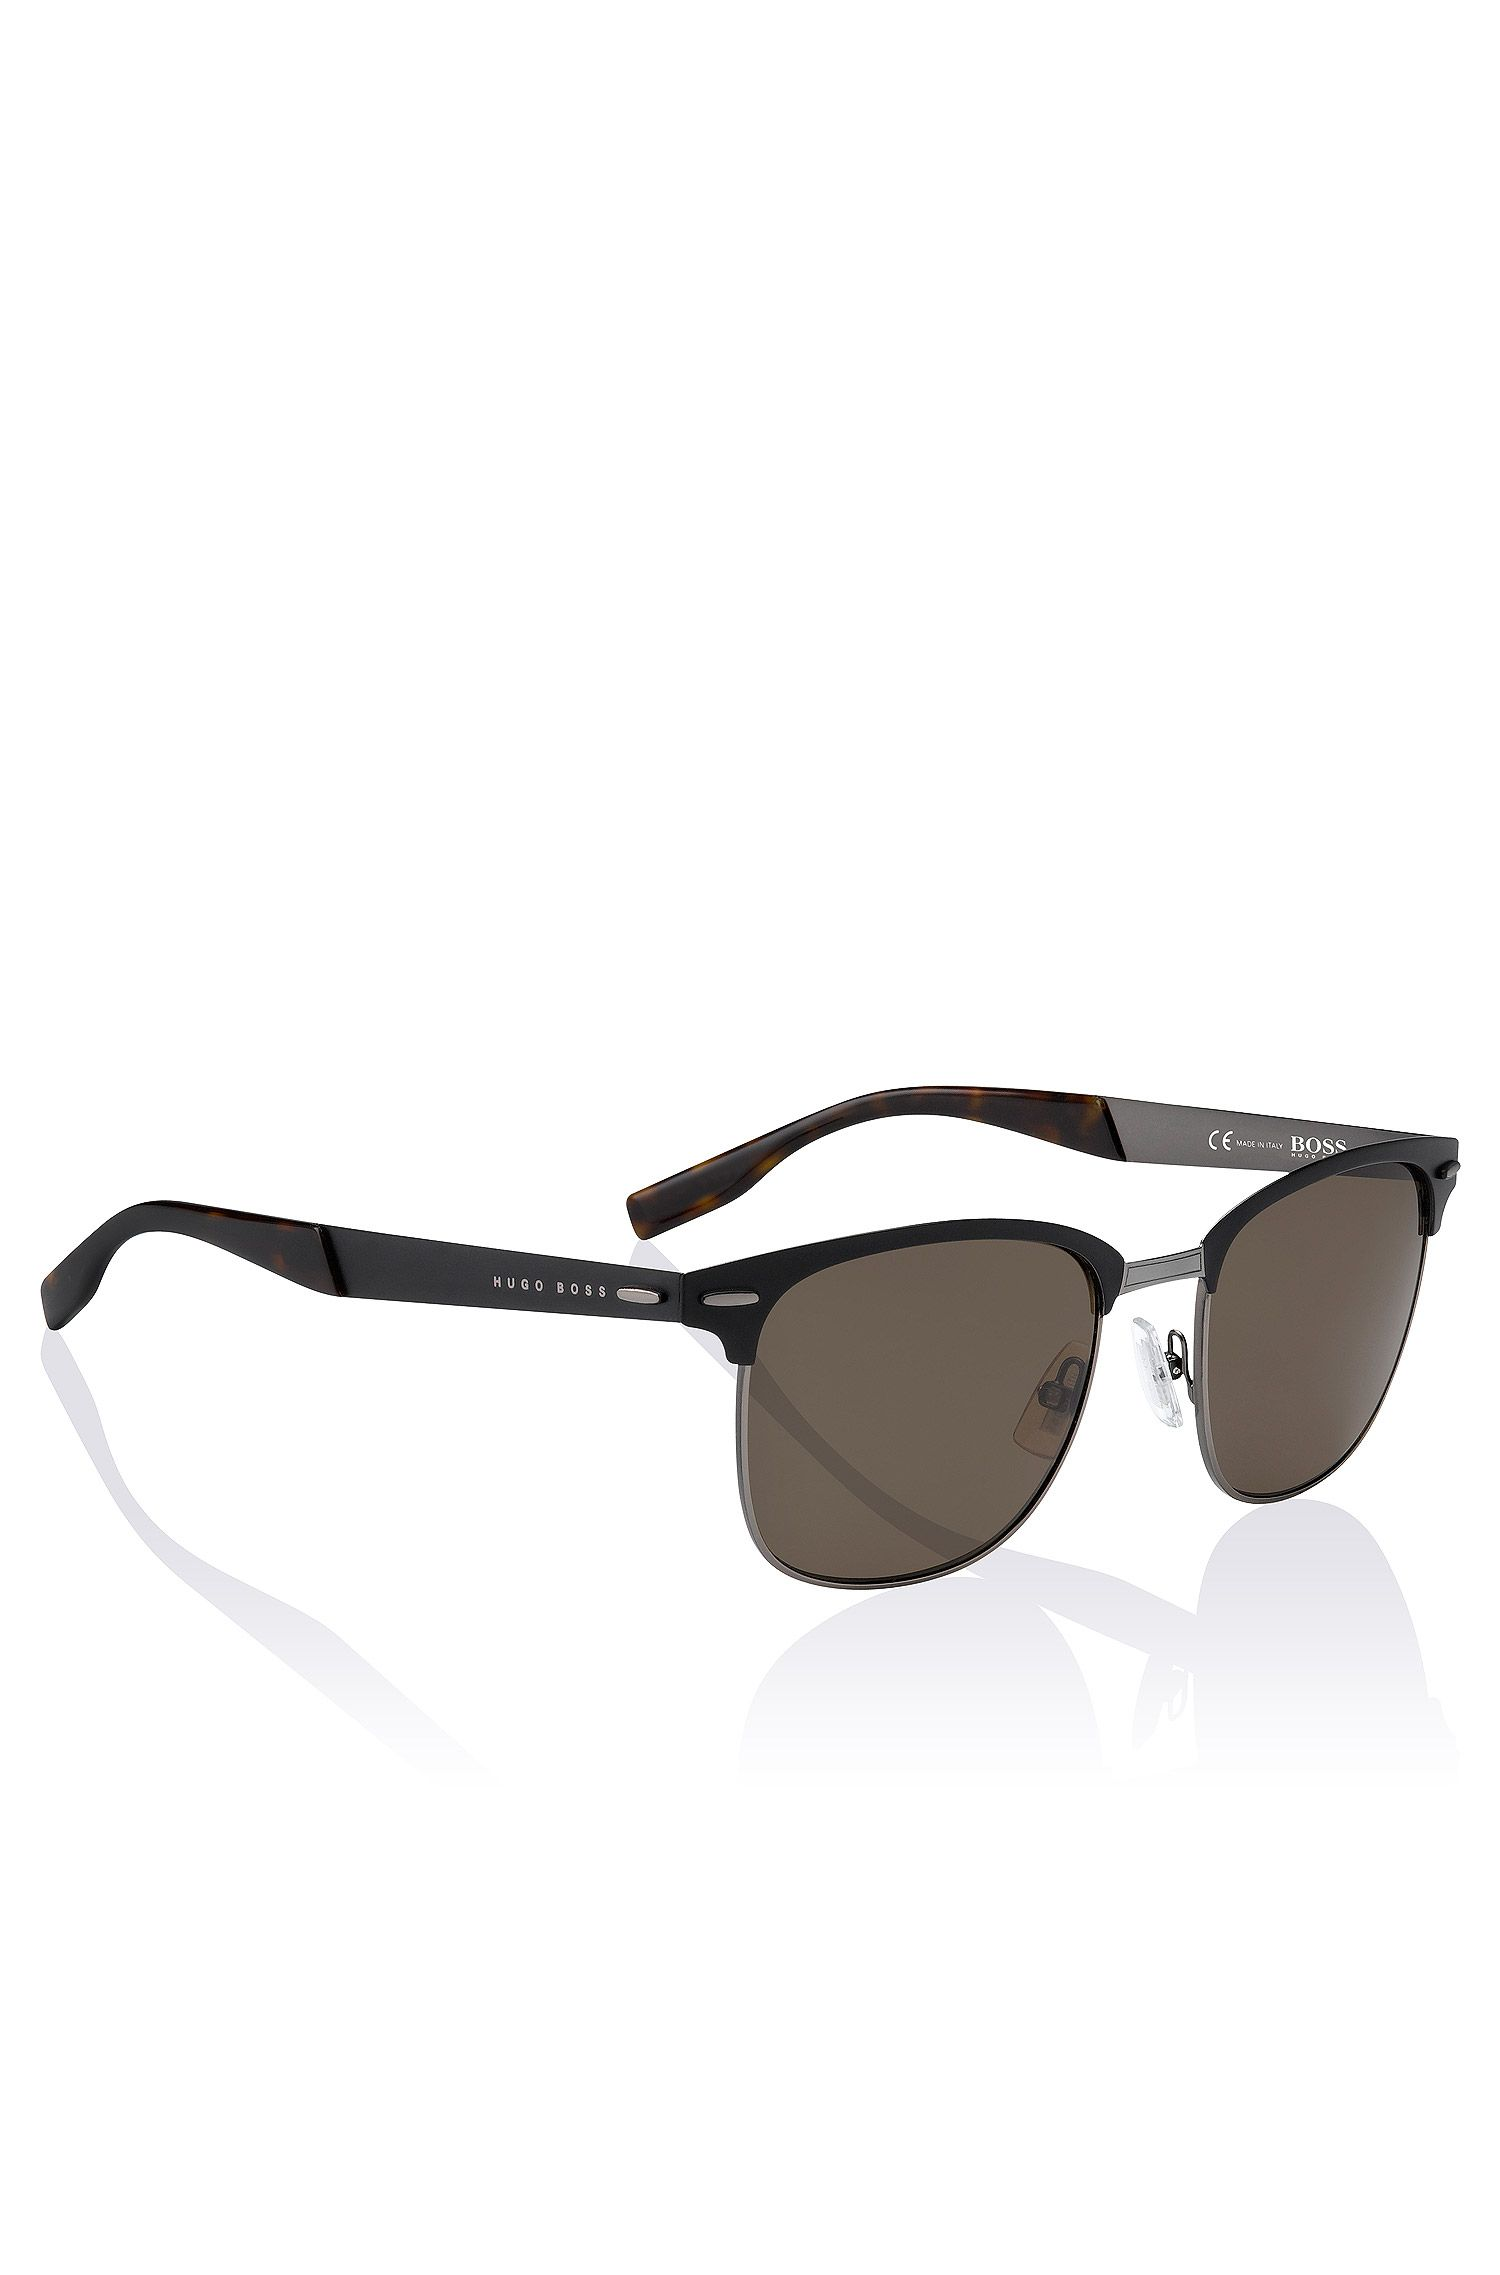 Sunglasses 'BOSS 0595/S', Assorted-Pre-Pack